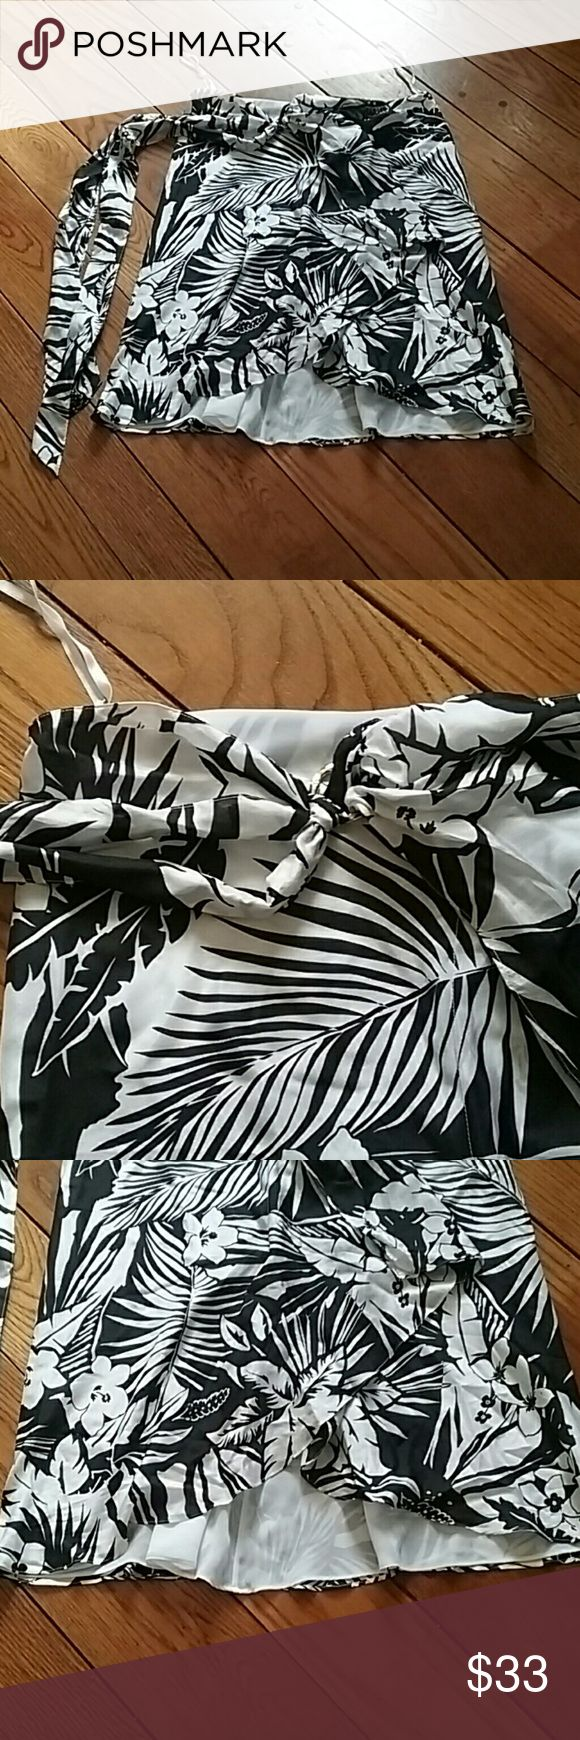 Lauren silk tropical floral skirt Gorgeous, timeless black & white tropical print. EUC. Gold ring holds belt that can be tied or left hanging. Loops for hanging on a hanger to protect the skirt. Shell is 100% silk, Lining 100% polyester Lauren Ralph Lauren Skirts Midi